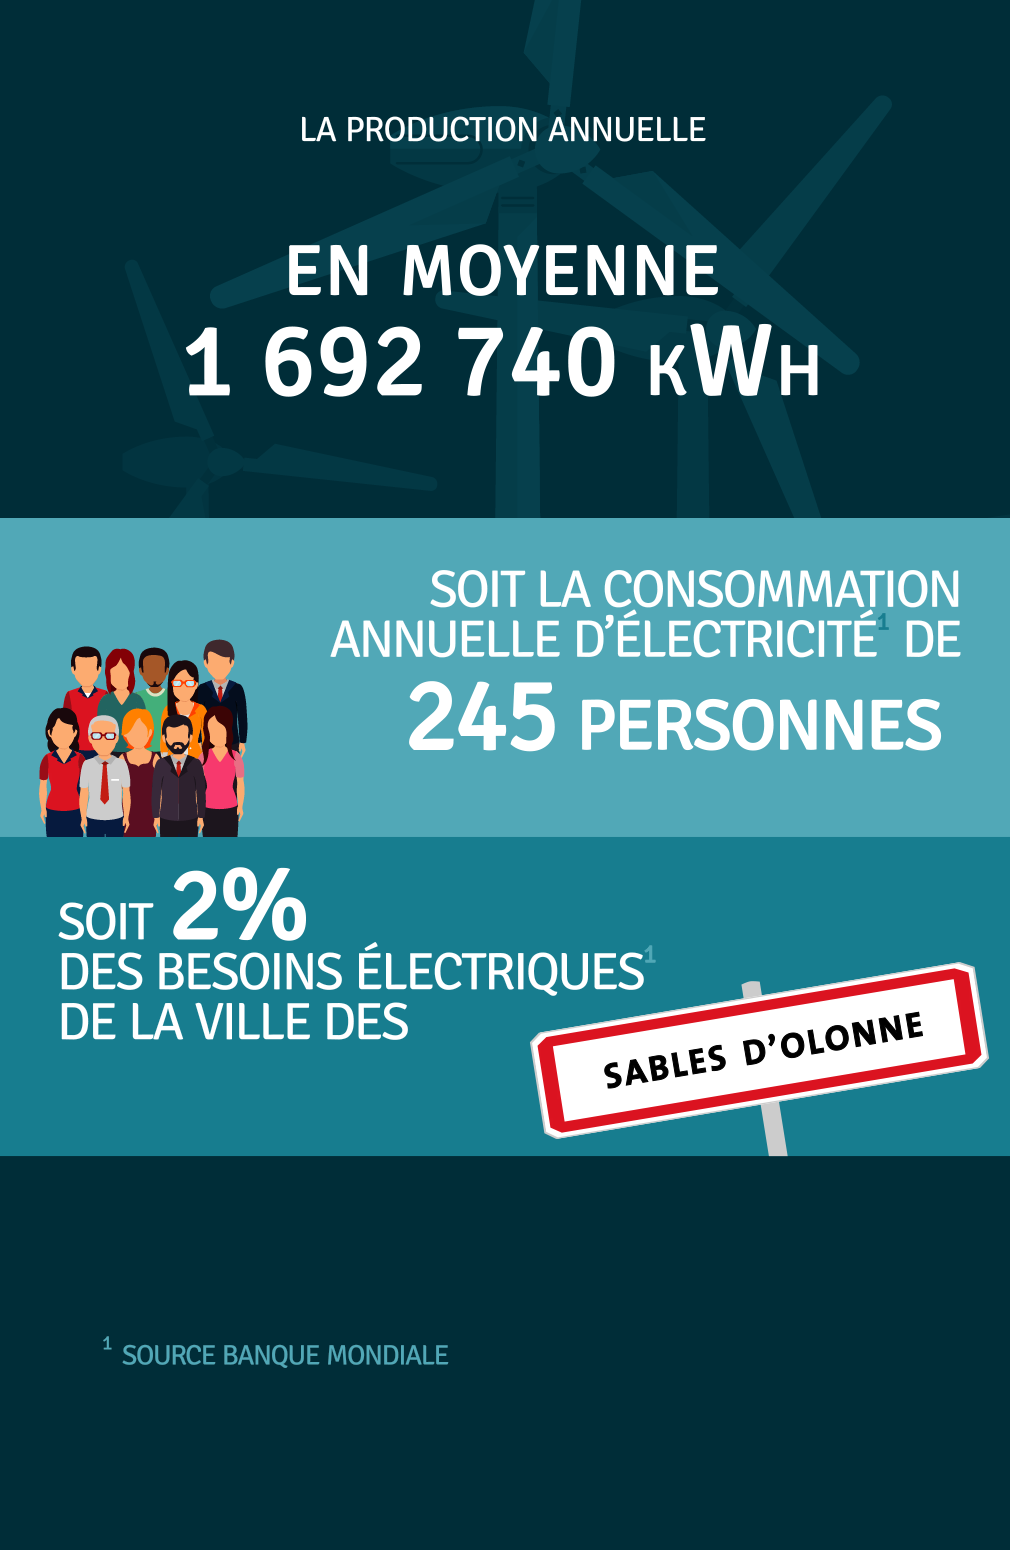 Production annuelle 1 692 740 kWh